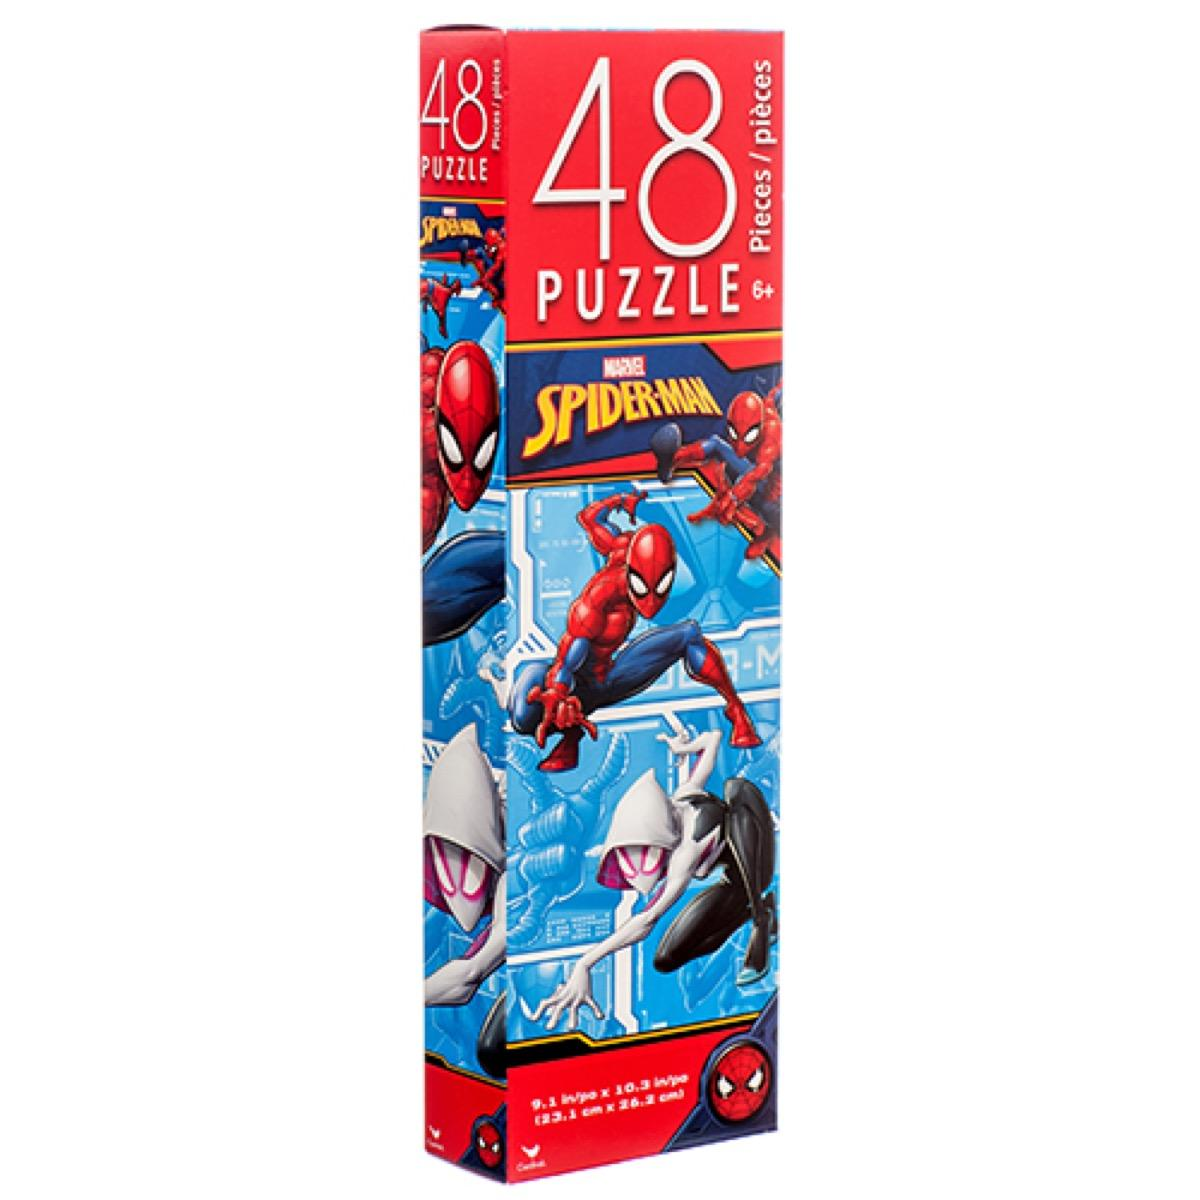 Spider - Man Into The Spider - Verse Spiderman Vs Spider - Woman Tower Puzzle